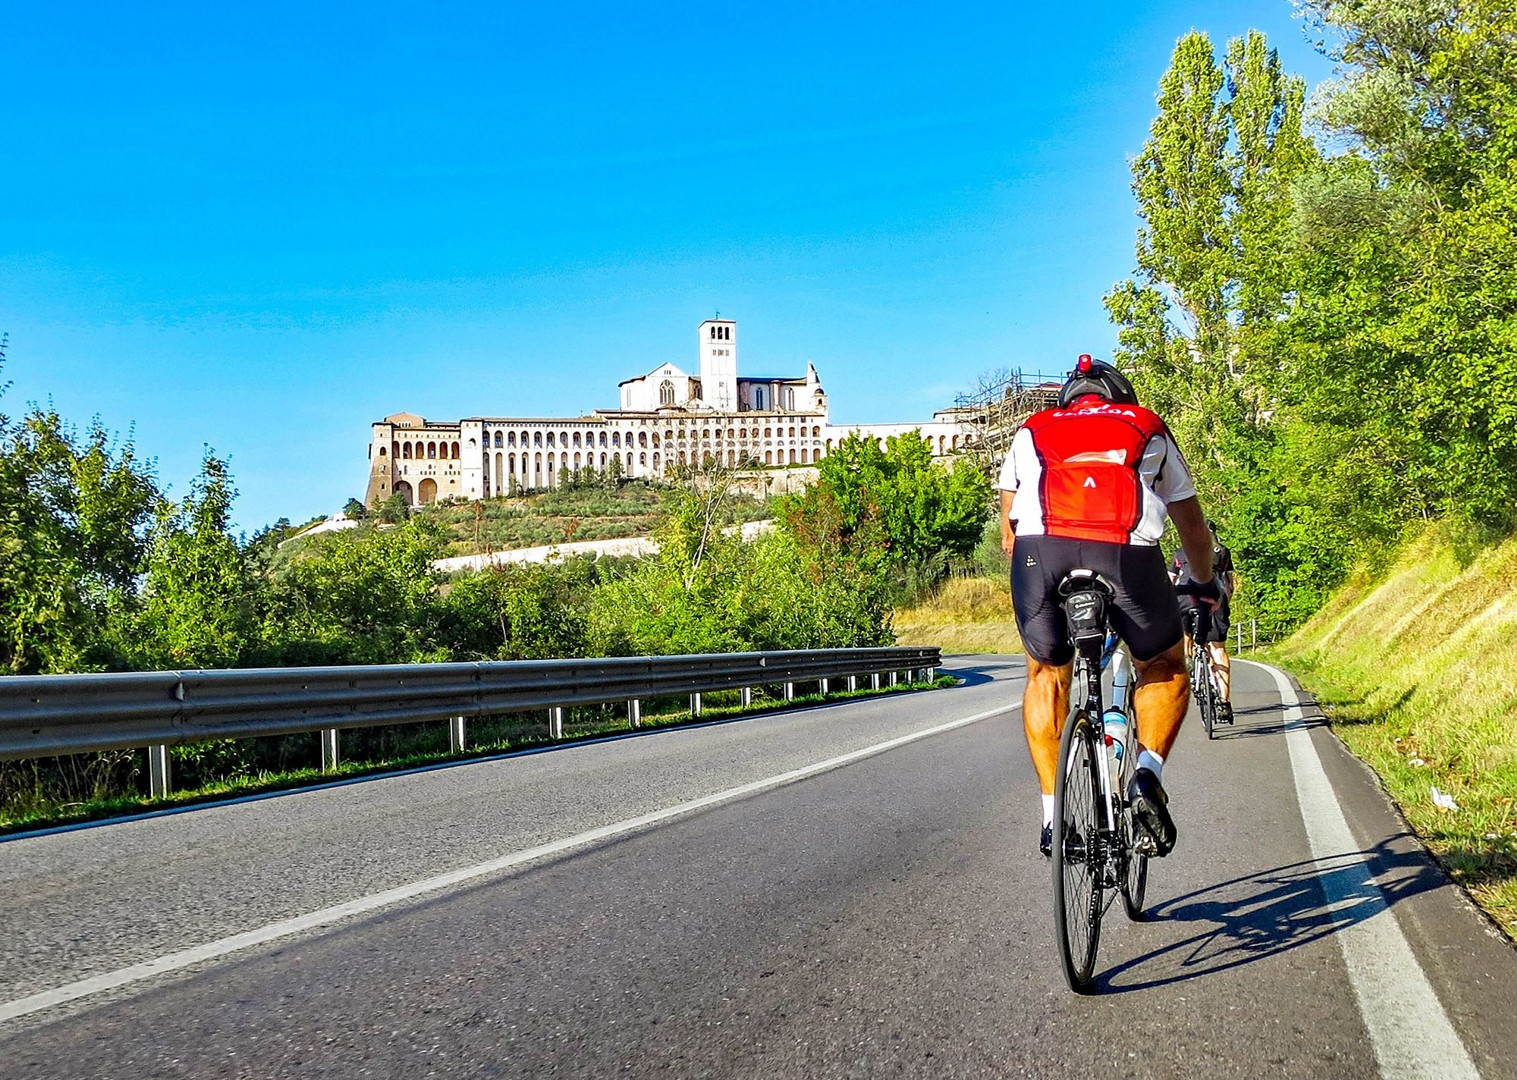 saddle-skedaddle-guided-road-cycling-ride-up-to-assisi-holiday.jpg - NEW! Italy - Coast to Coast - L'Adriatico al Tirreno - Road Cycling